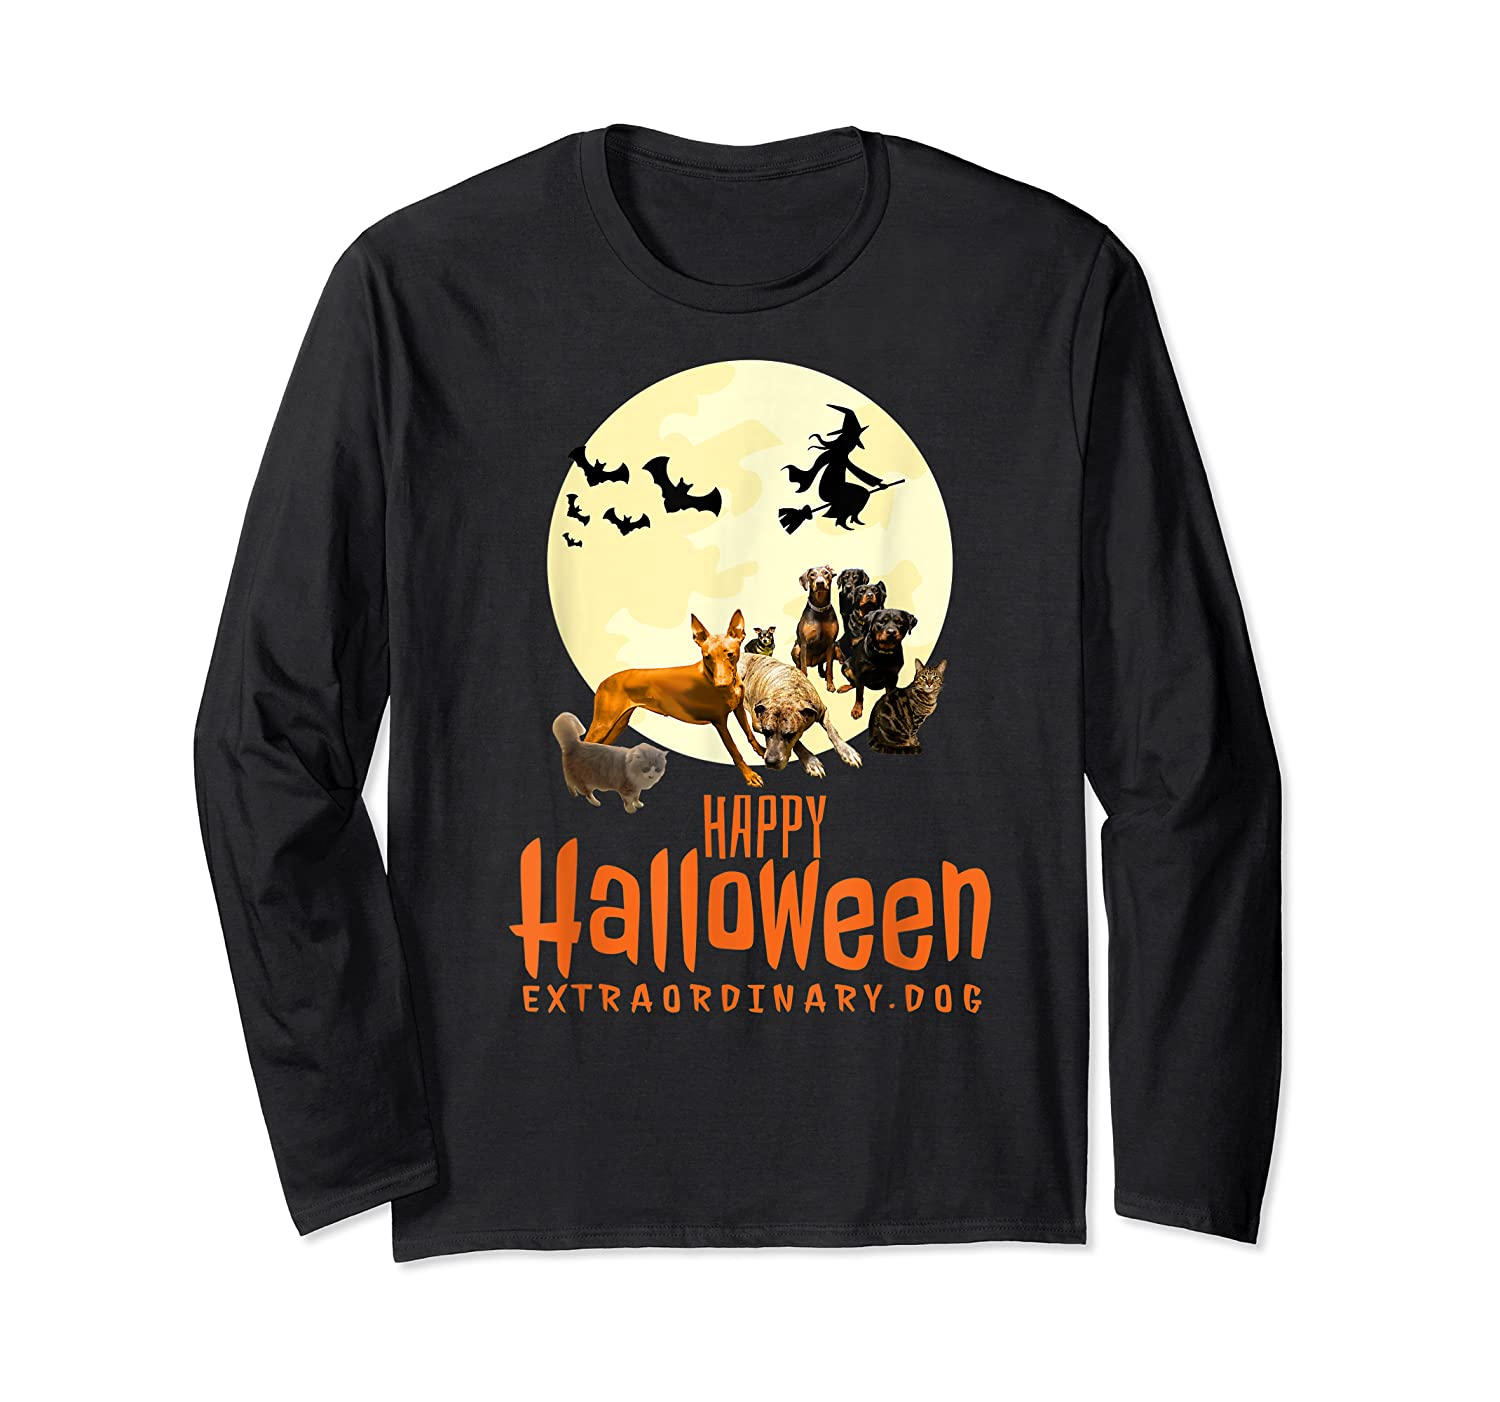 Happy Halloween With Extraordinary Dogs And Cats T Shirt Long Sleeve T-shirt